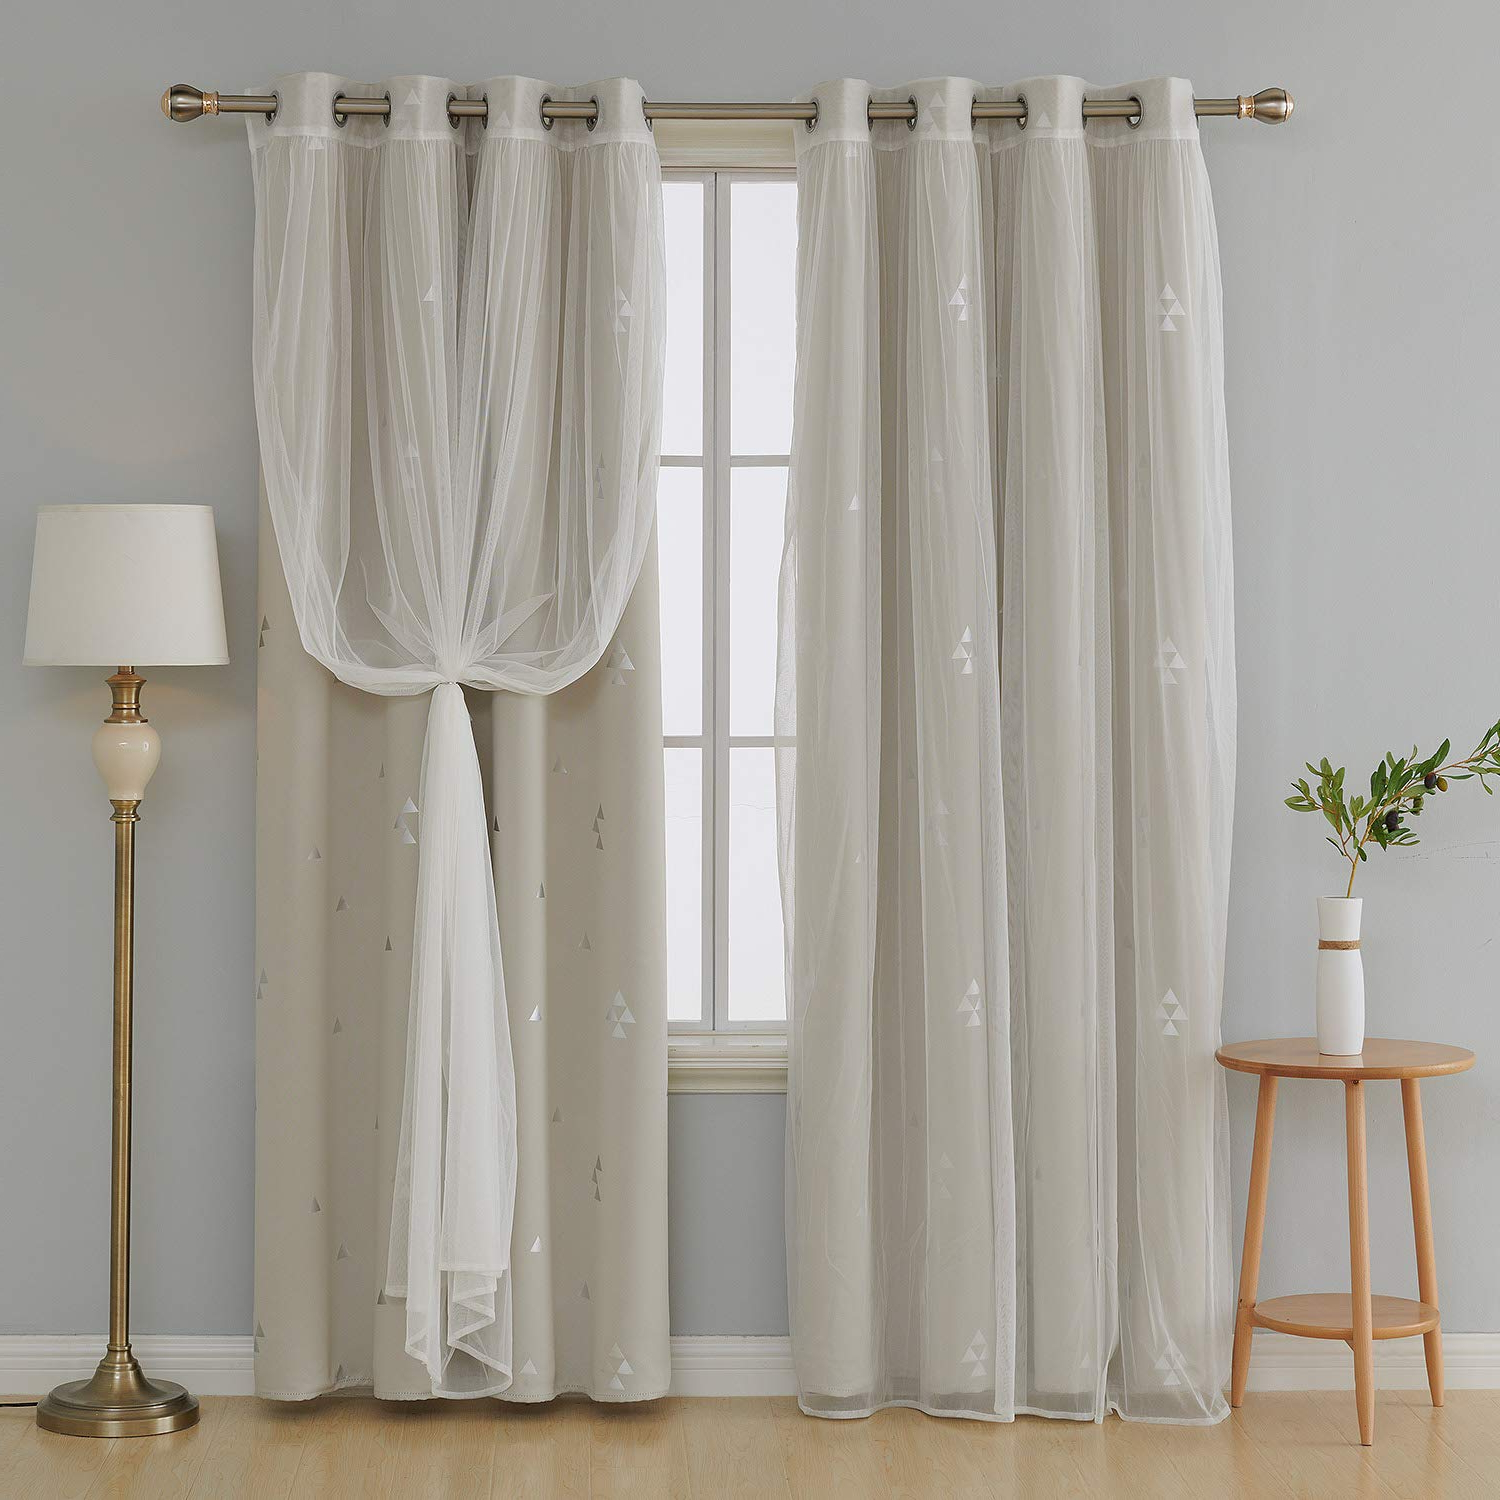 Mix And Match Blackout Tulle Lace Sheer Curtain Panel Sets With Regard To Preferred Deconovo Mix And Match Curtain Triangle Printed Blackout Curtains Panels Cream And Tulle Lace White Sheer Curtains For Nursery With Grommet Top (View 11 of 20)